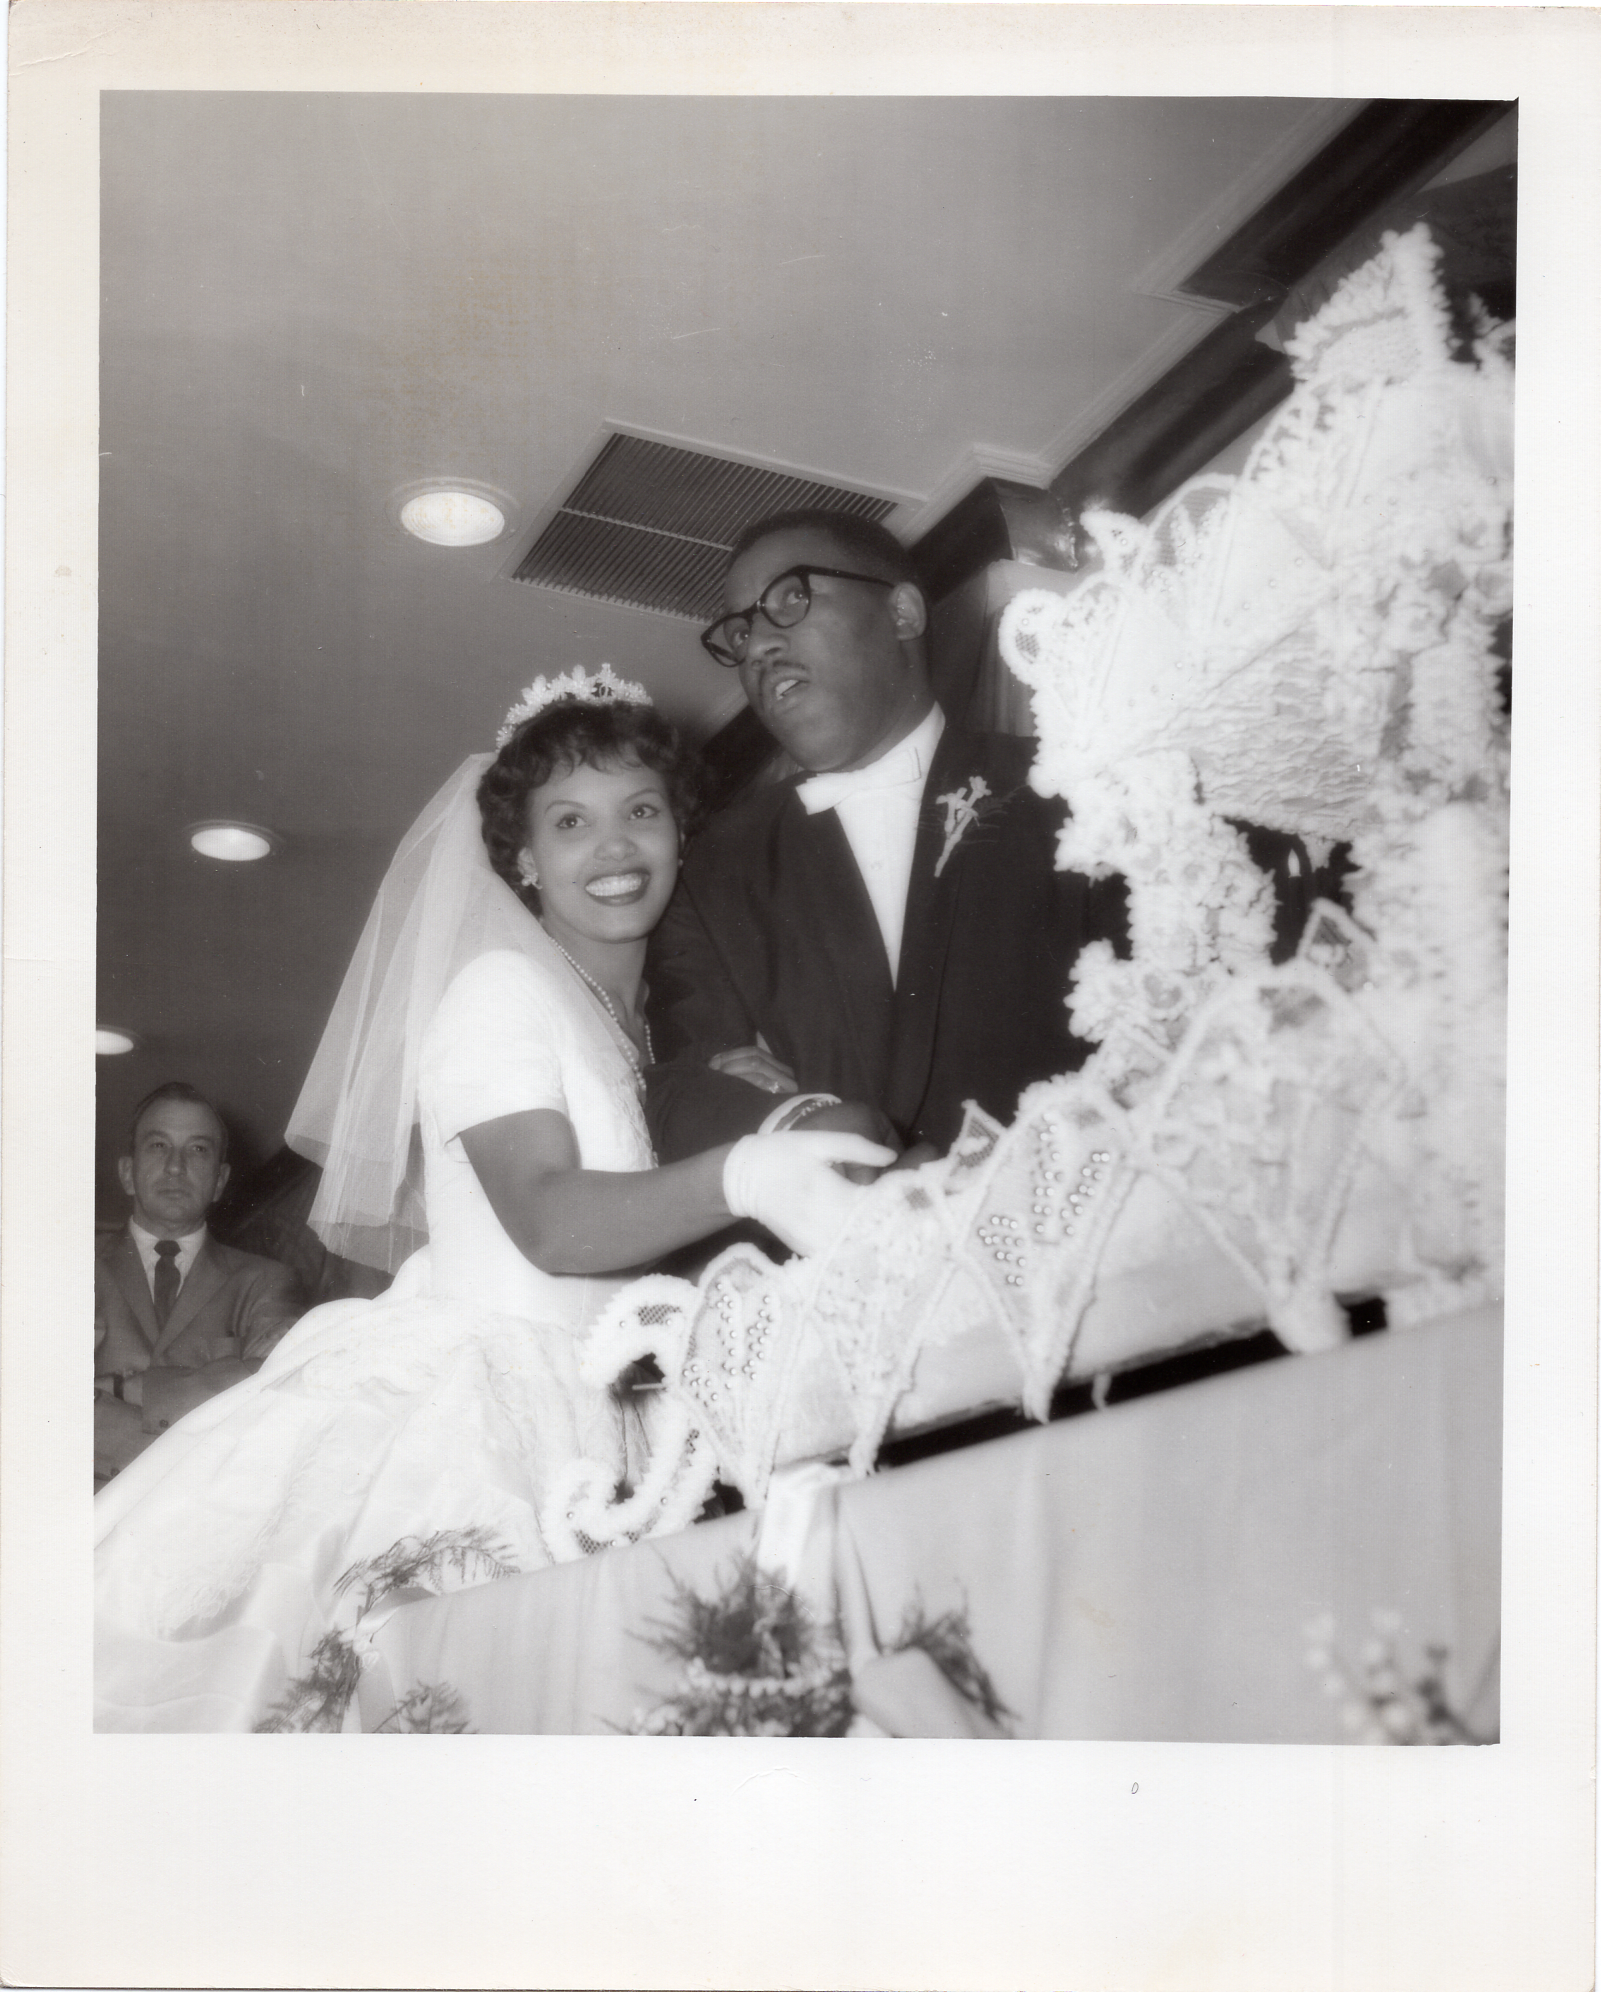 Lourdes Guerrero and her newly wedded husband cutting their wedding cake on May of 1960. Courtesy of Lourdes Guerrero Otis